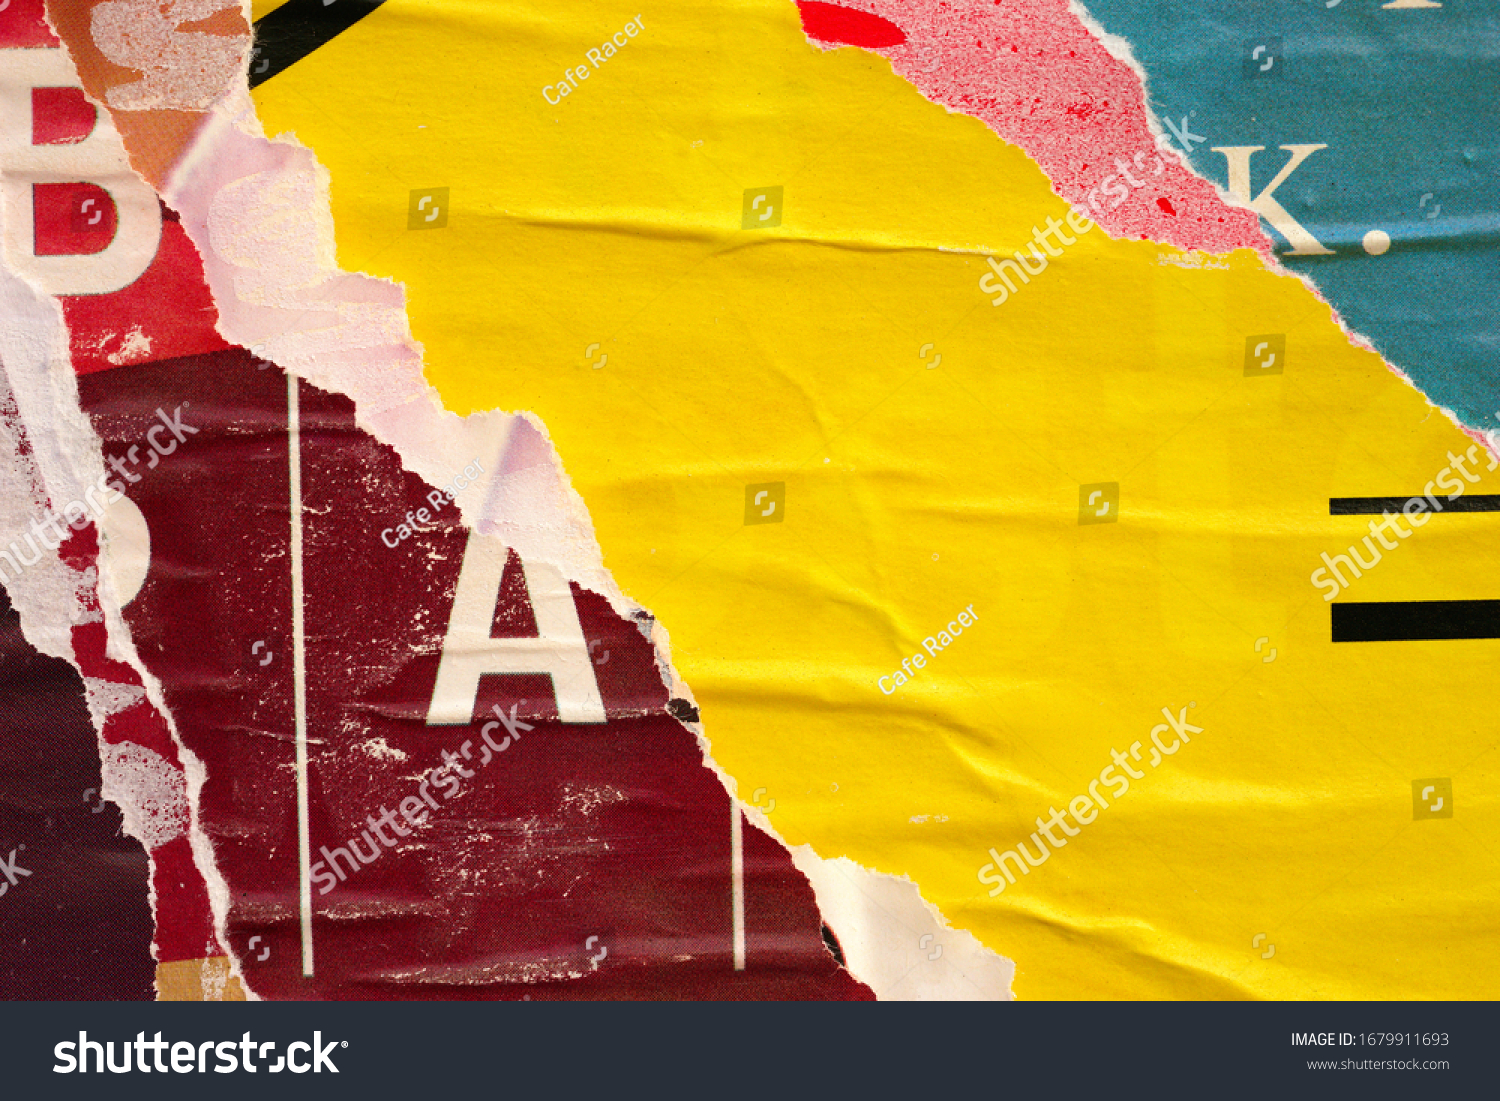 Old ripped torn posters grunge texture background creased crumpled paper backdrop placard surface / Urban street posters  #1679911693